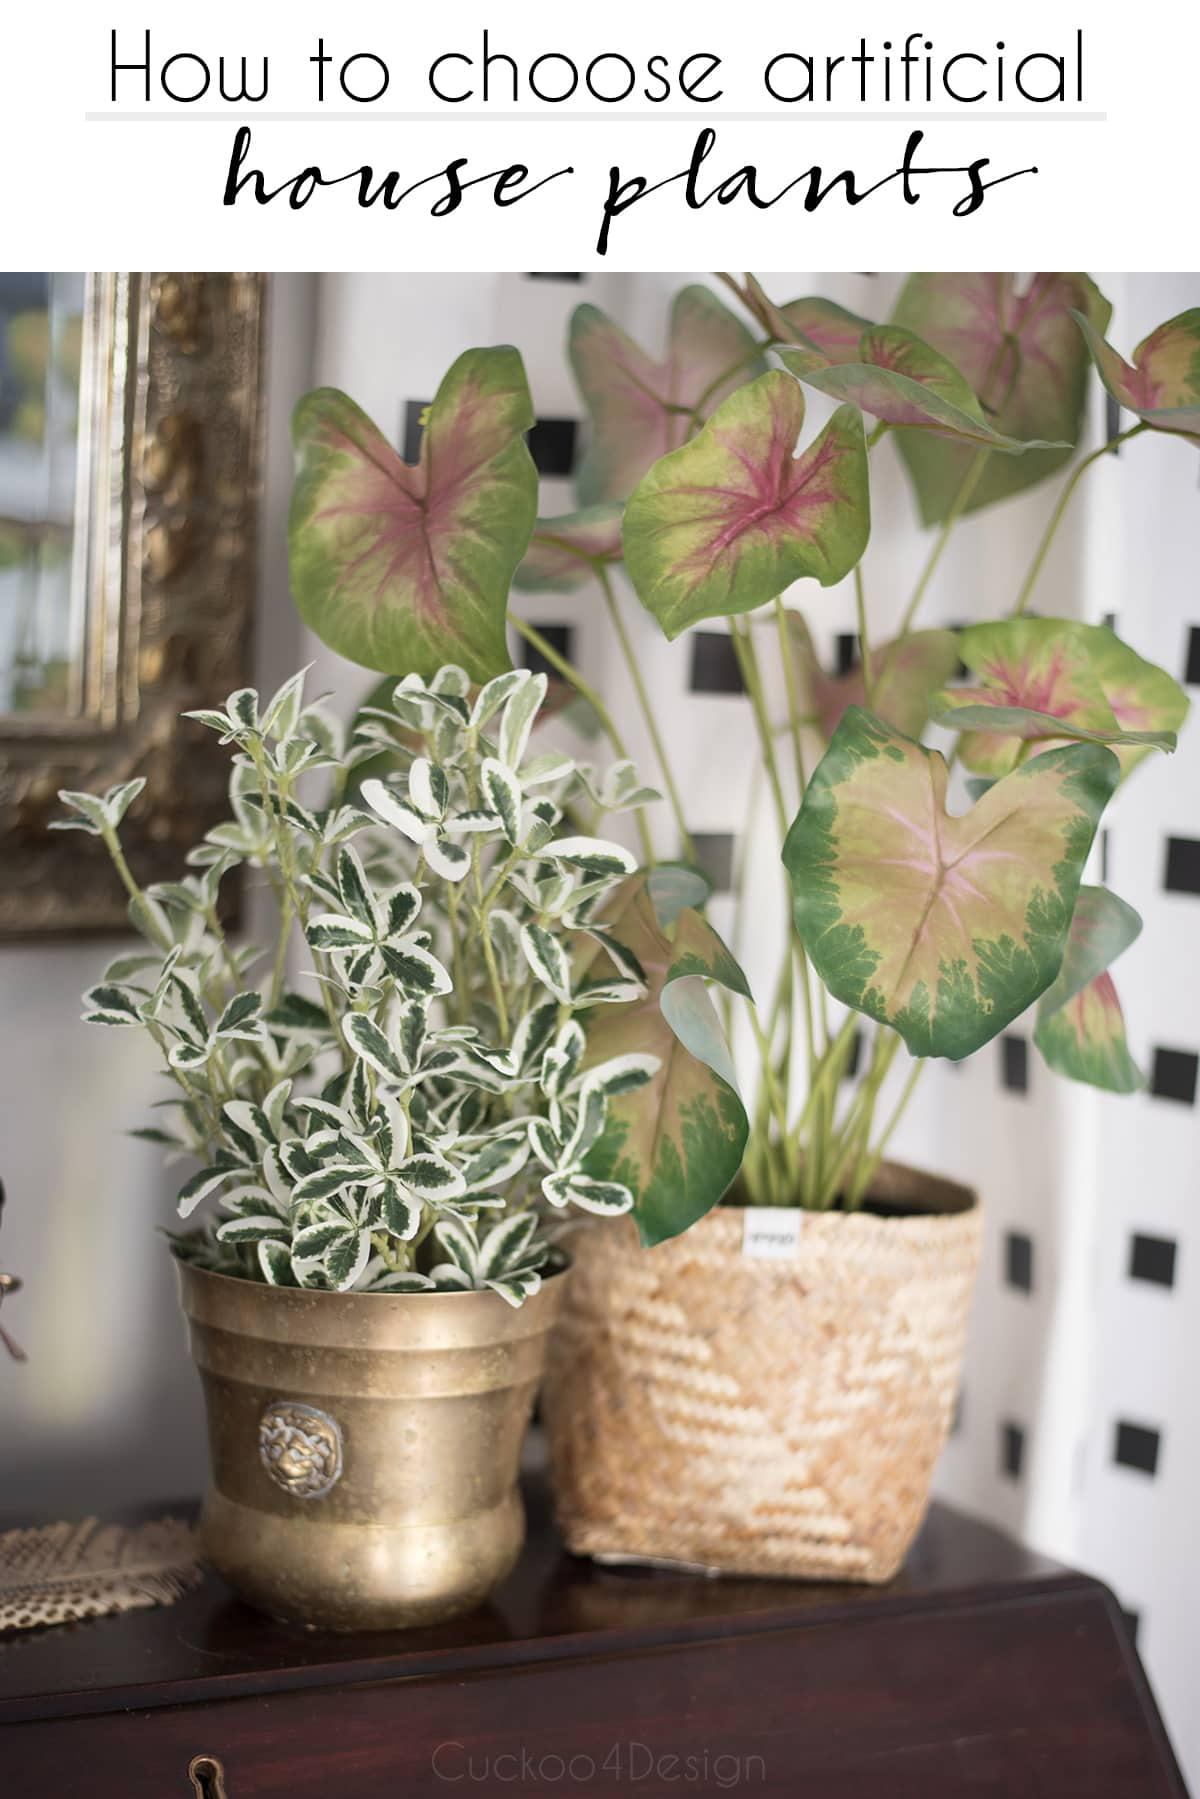 How to choose artificial house plants that look real